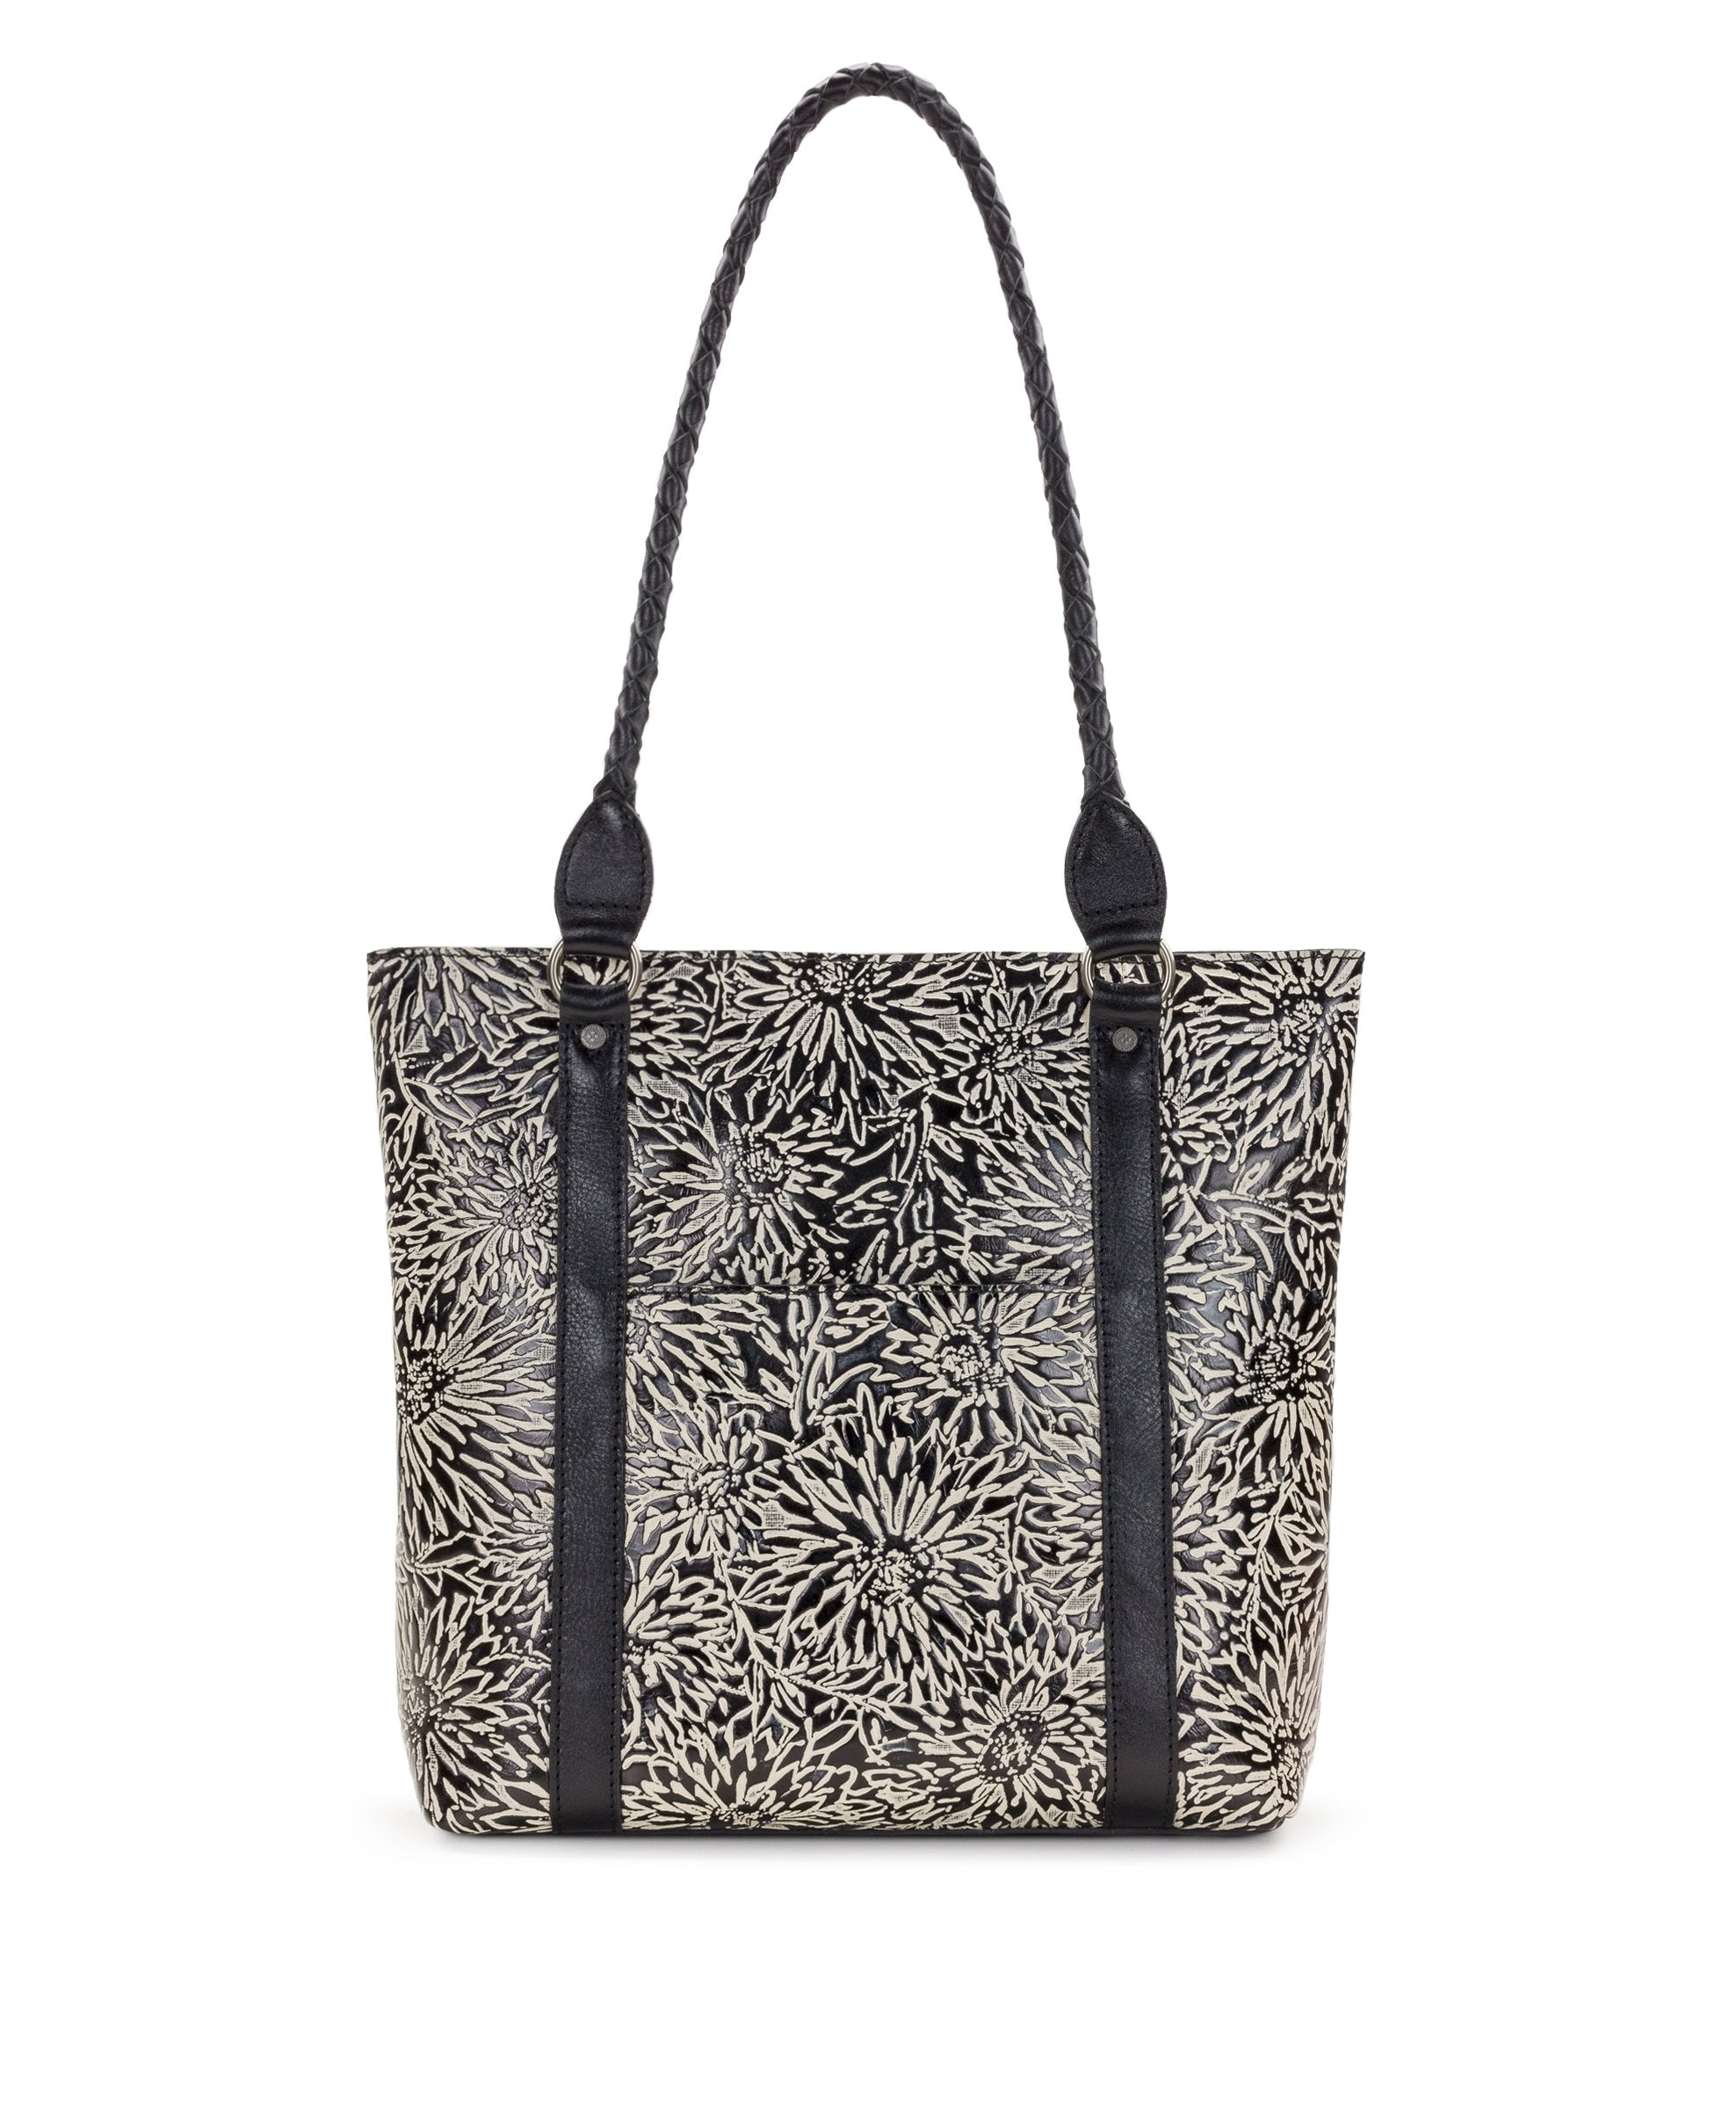 Rena Tote - Sunflower Tooling - Rena Tote - Sunflower Tooling